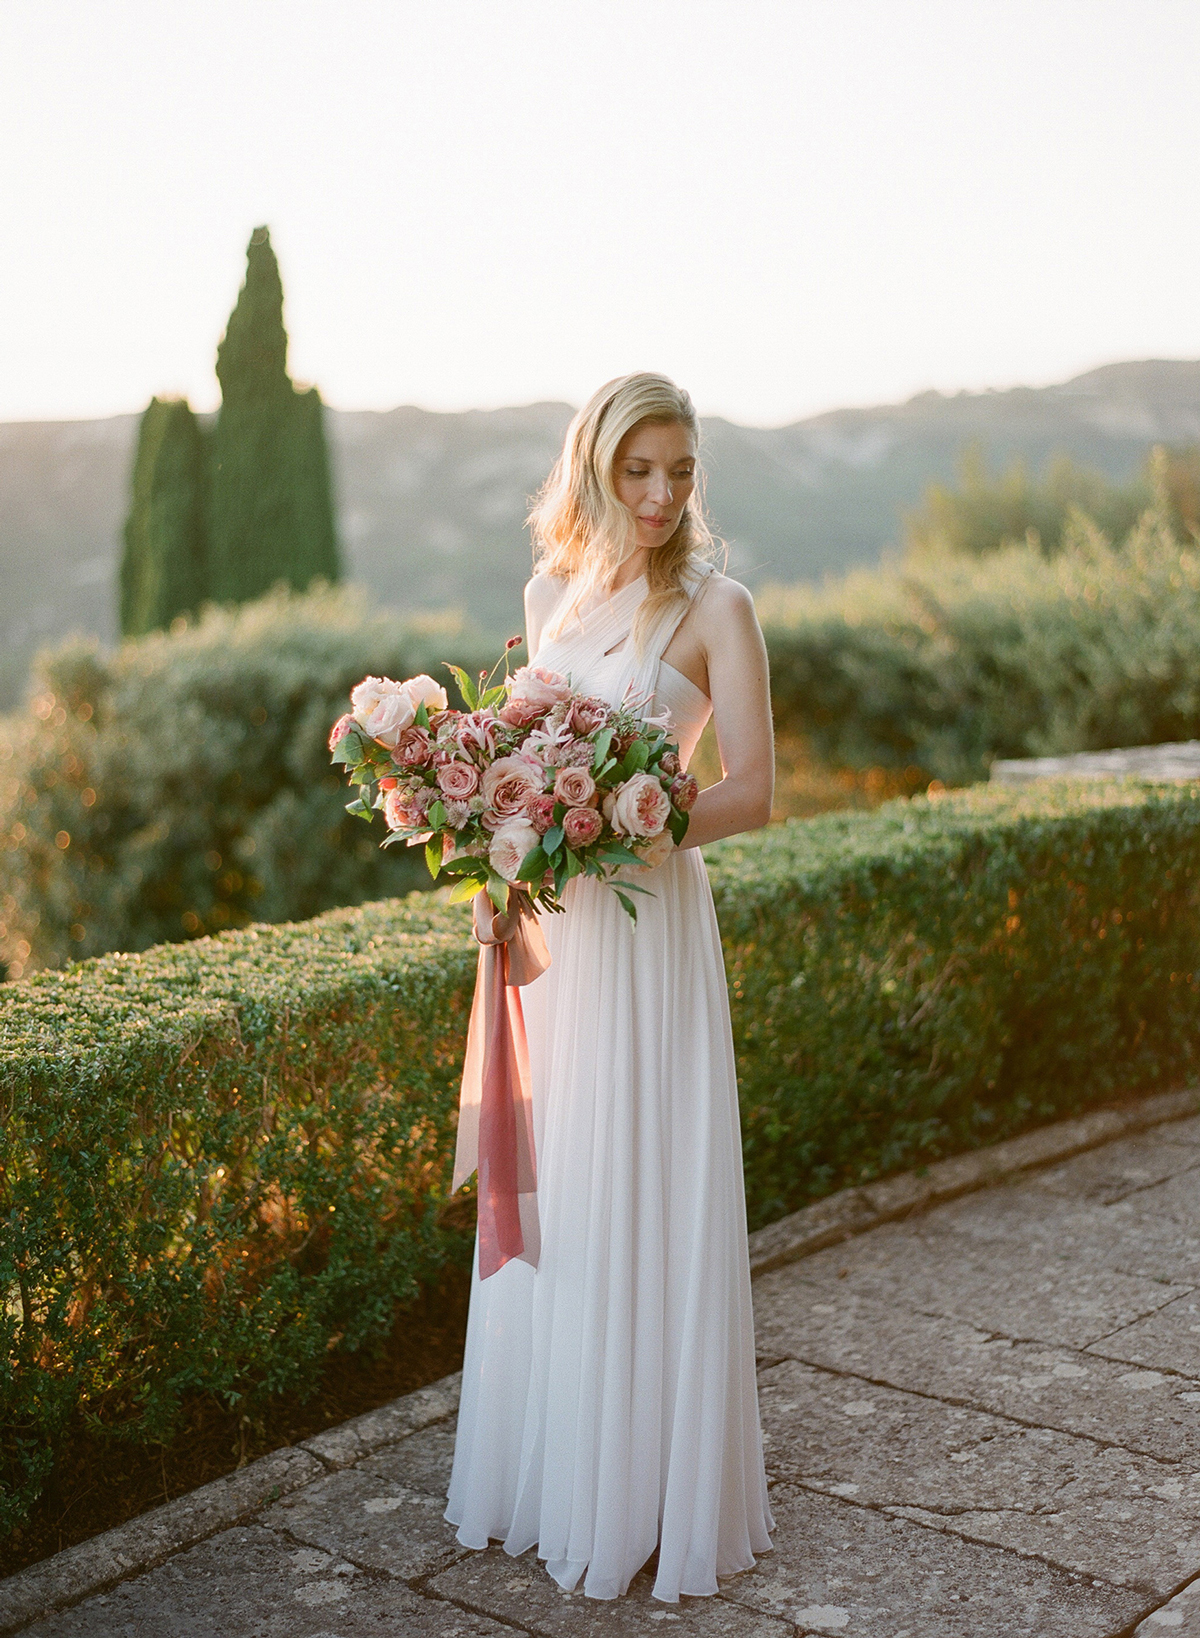 Bustle 101 Everything You Need To Know About Wedding Dress